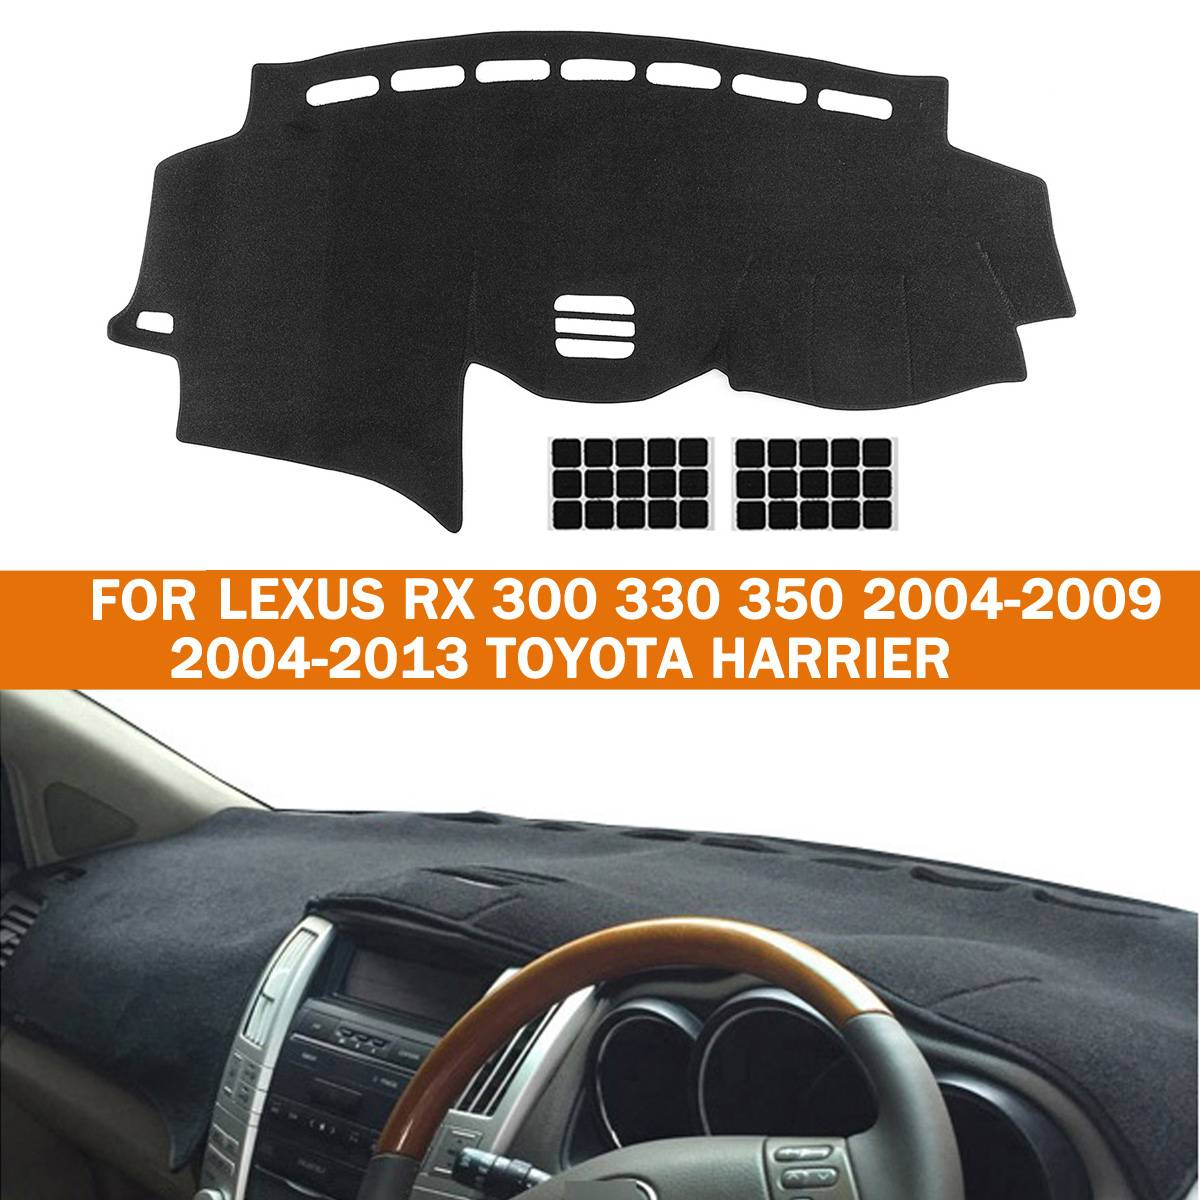 Car Dashmat Dashboard Mat Dash Board Cover Anti Slip Pad For LEXUS RX 300 330 350 2004-2009 For Toyota For Harrier 2004-2013